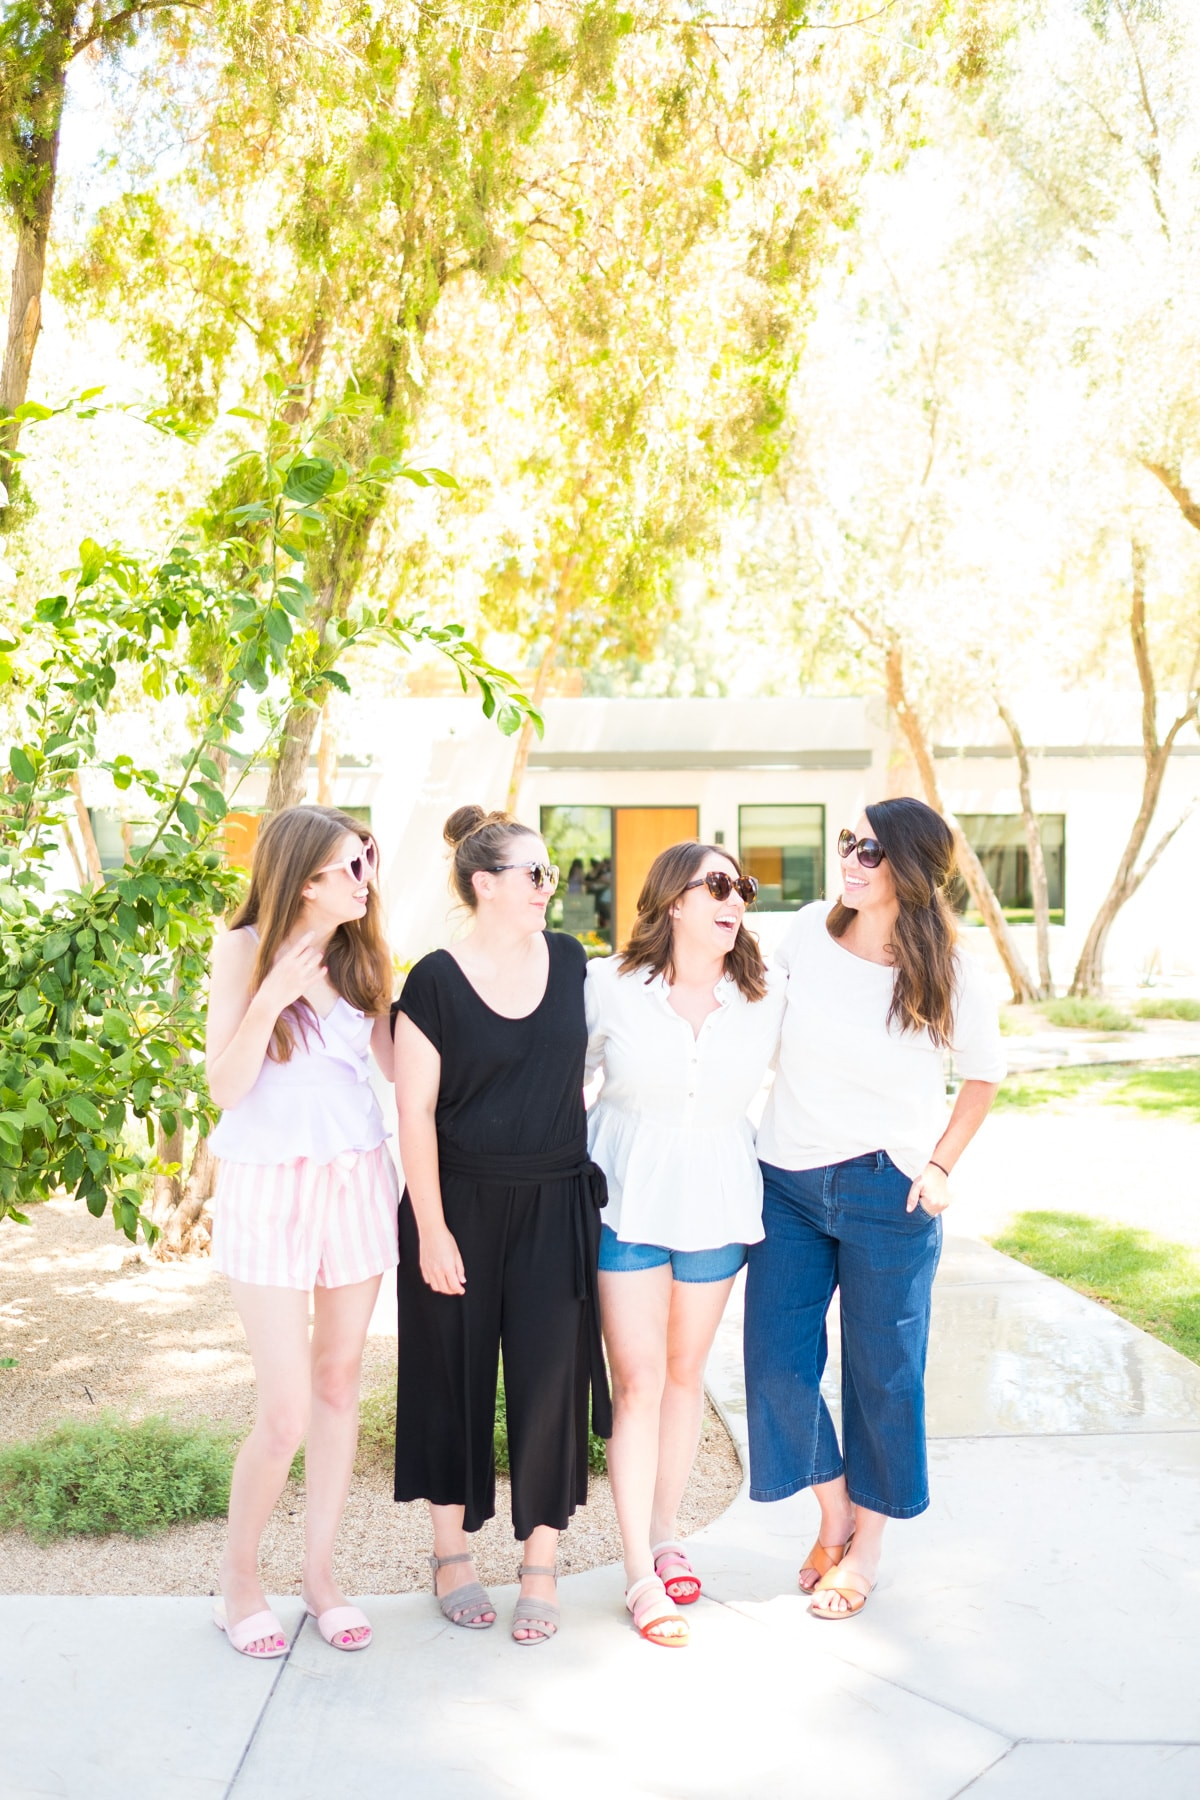 Our Travels: A Friends Trip To Scottsdale, AZ by top Houston lifestyle blogger Ashley Rose of sugar and cloth